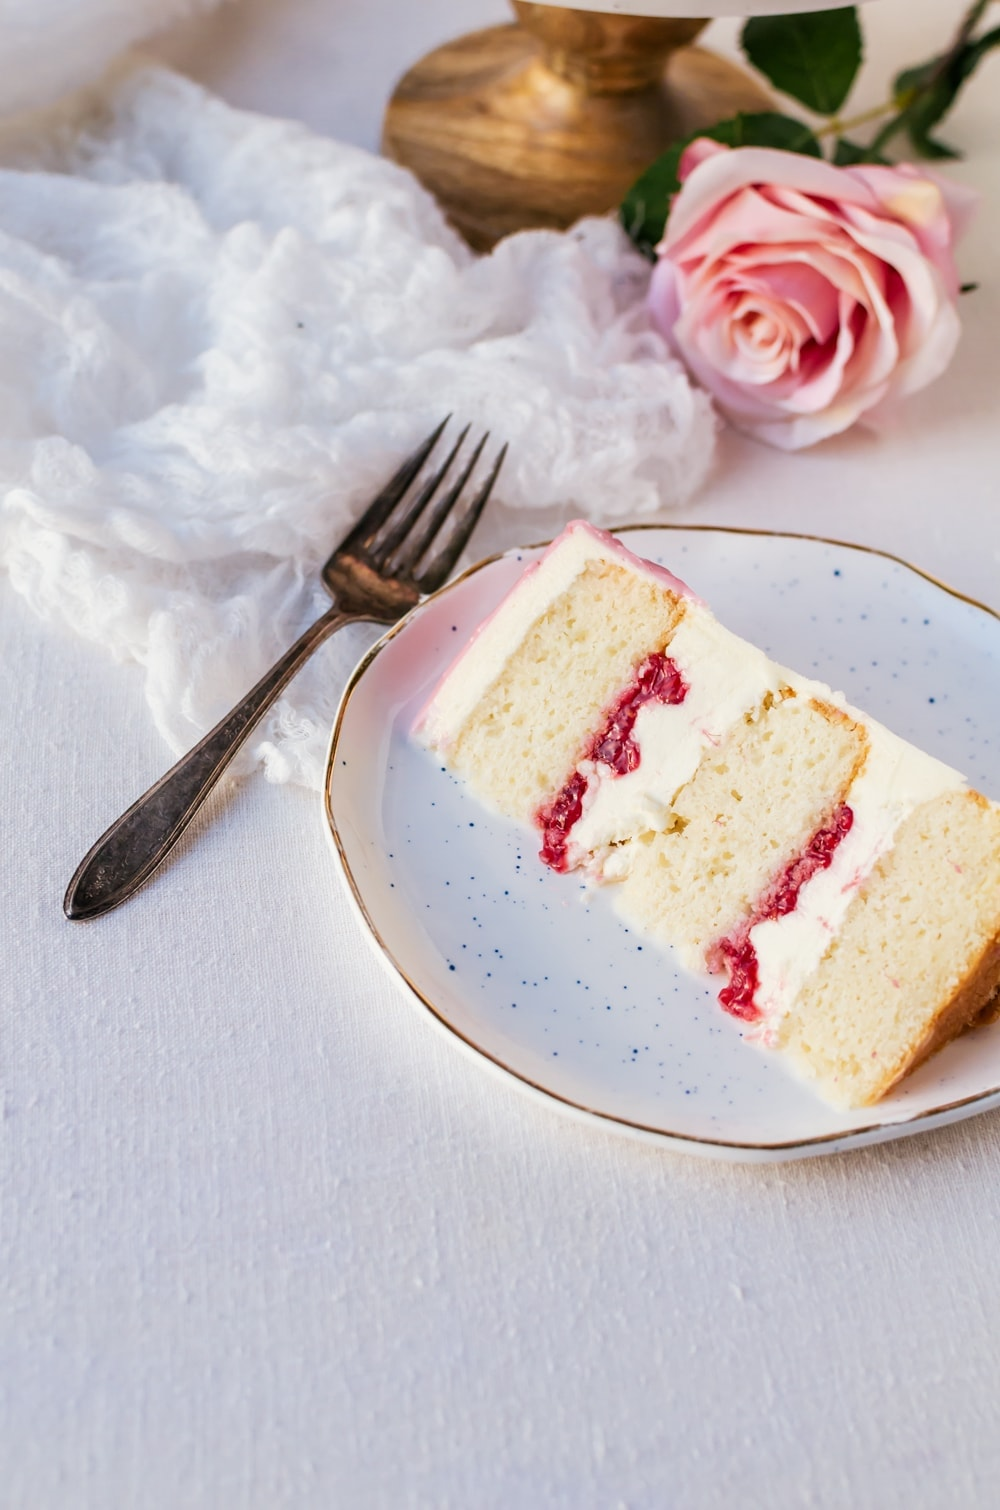 Enjoy the holidays with a raspberry rose cake made with sparkling rose wine